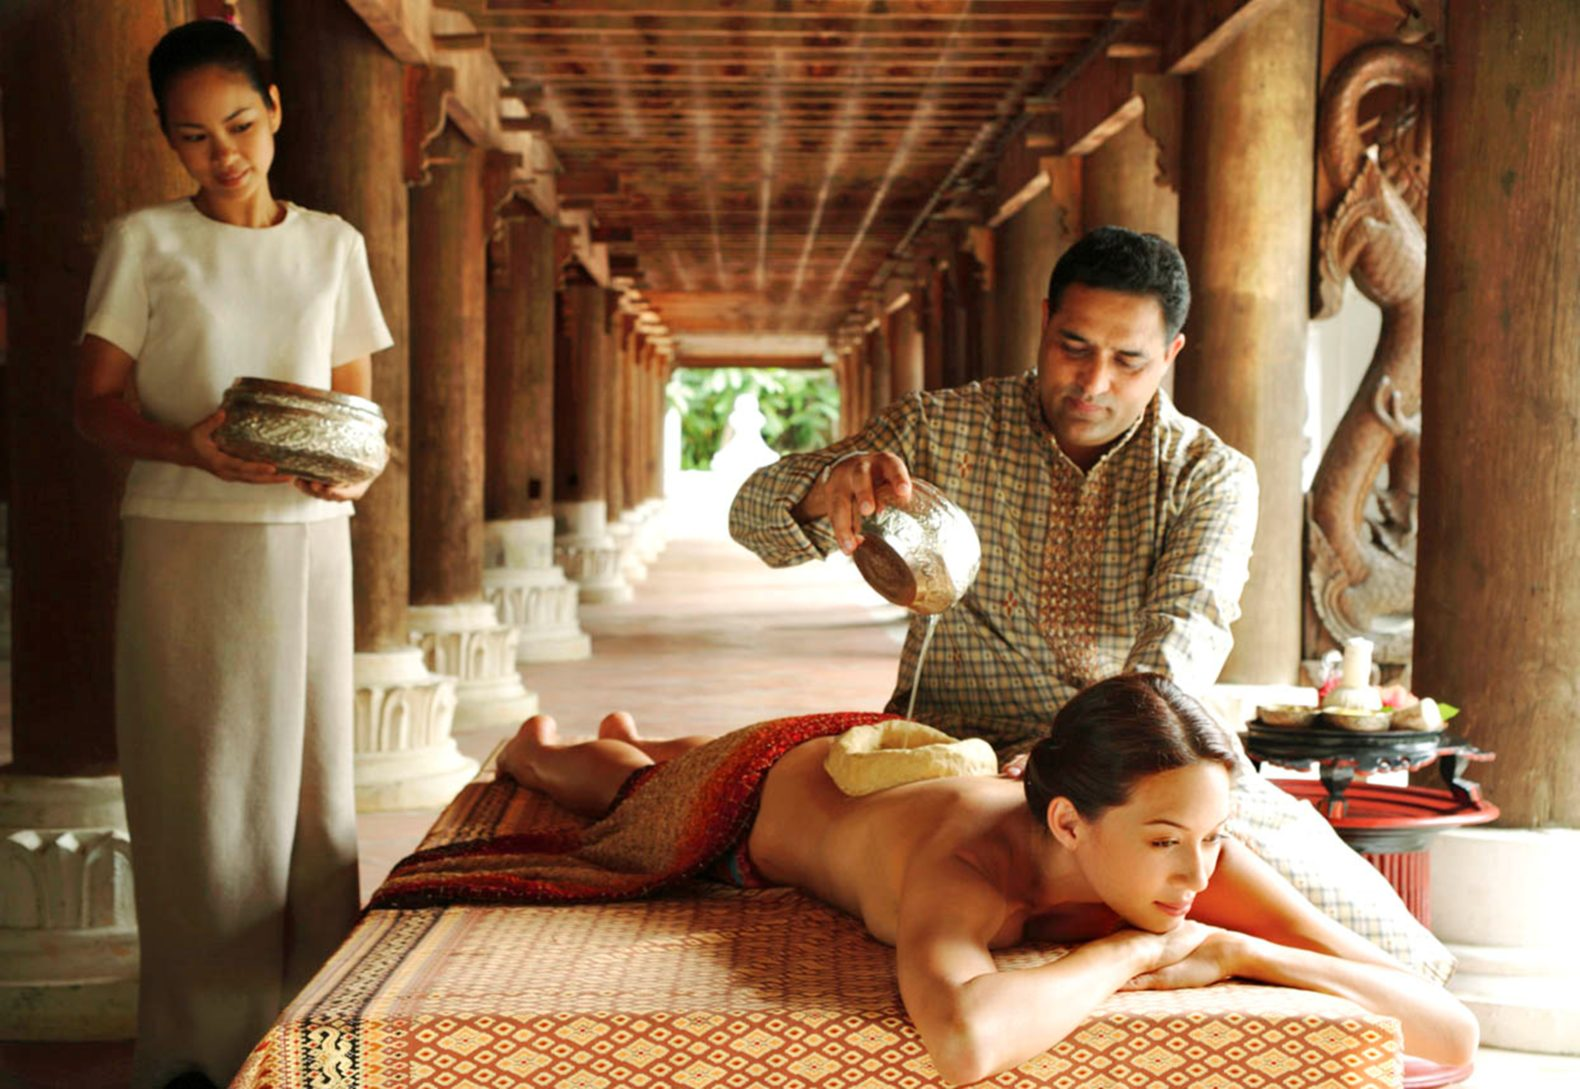 ayurvedic-treatment-spa-massage-oil-dhara-dhevi-chiang-mai-thailand-asia